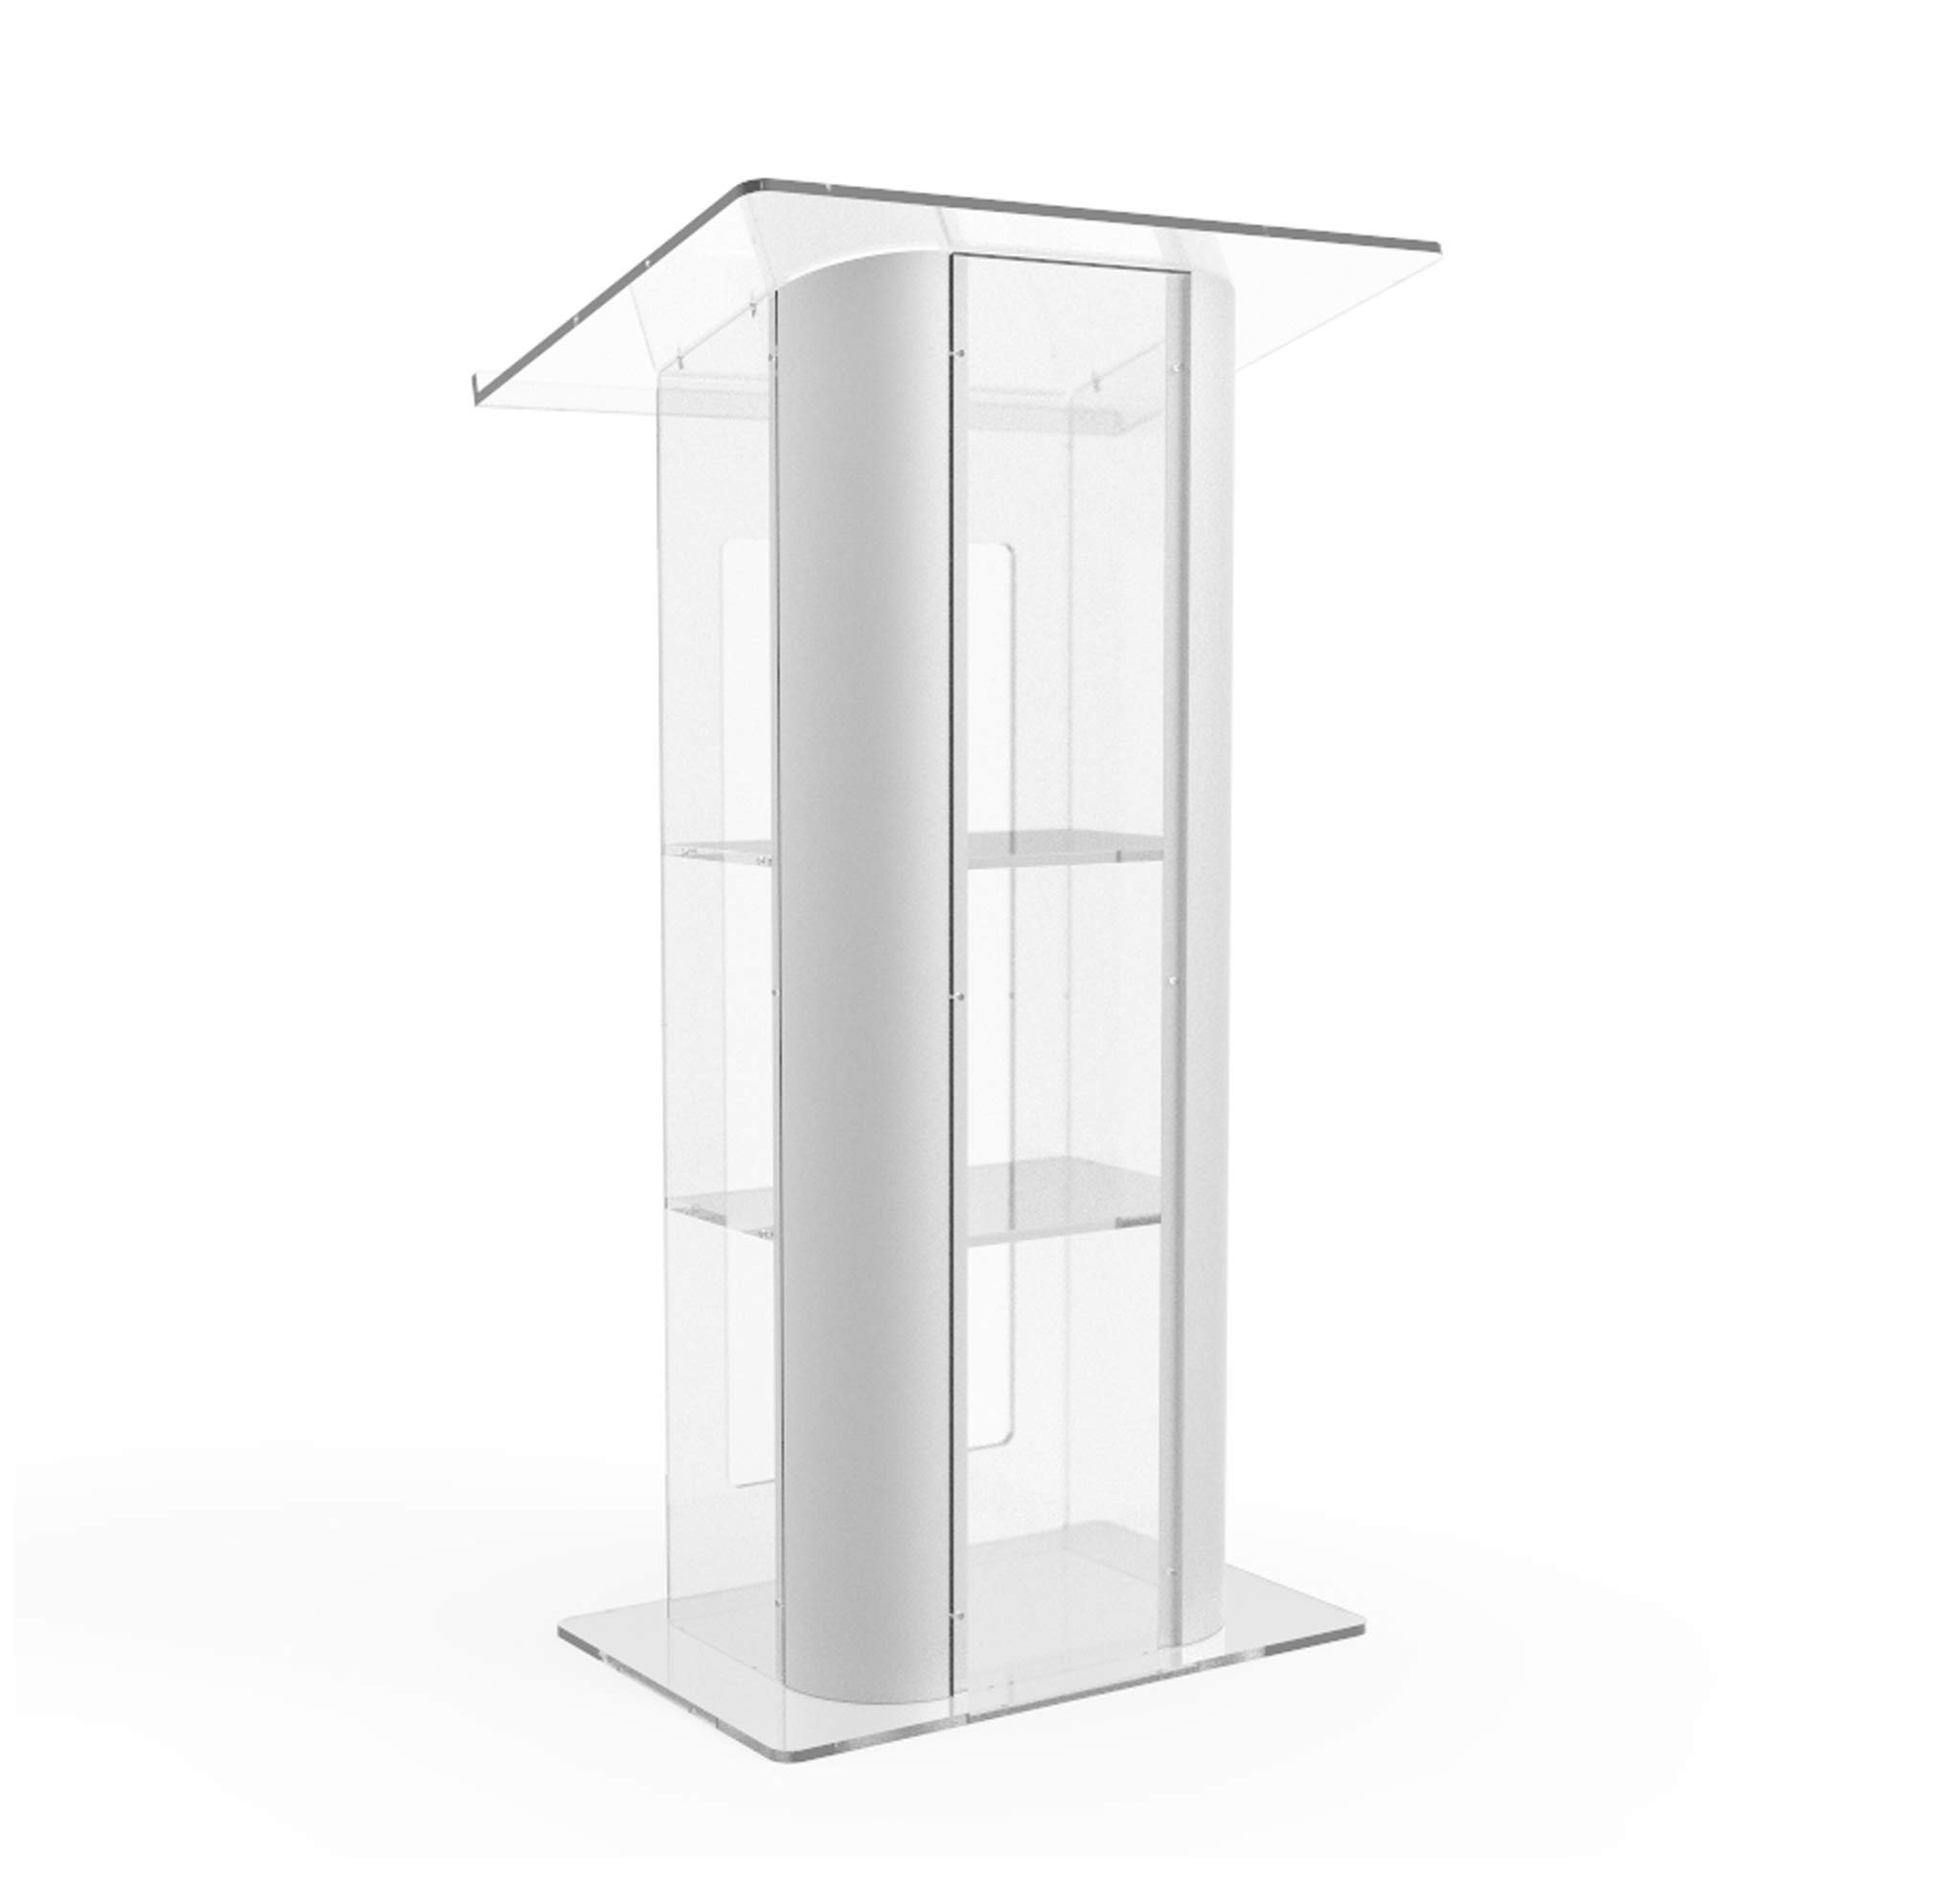 FixtureDisplays Clear Acrylic Plexiglass Podium Curved Brushed Stainless Steel Sides Pulpit Lectern 14307 by FixtureDisplays